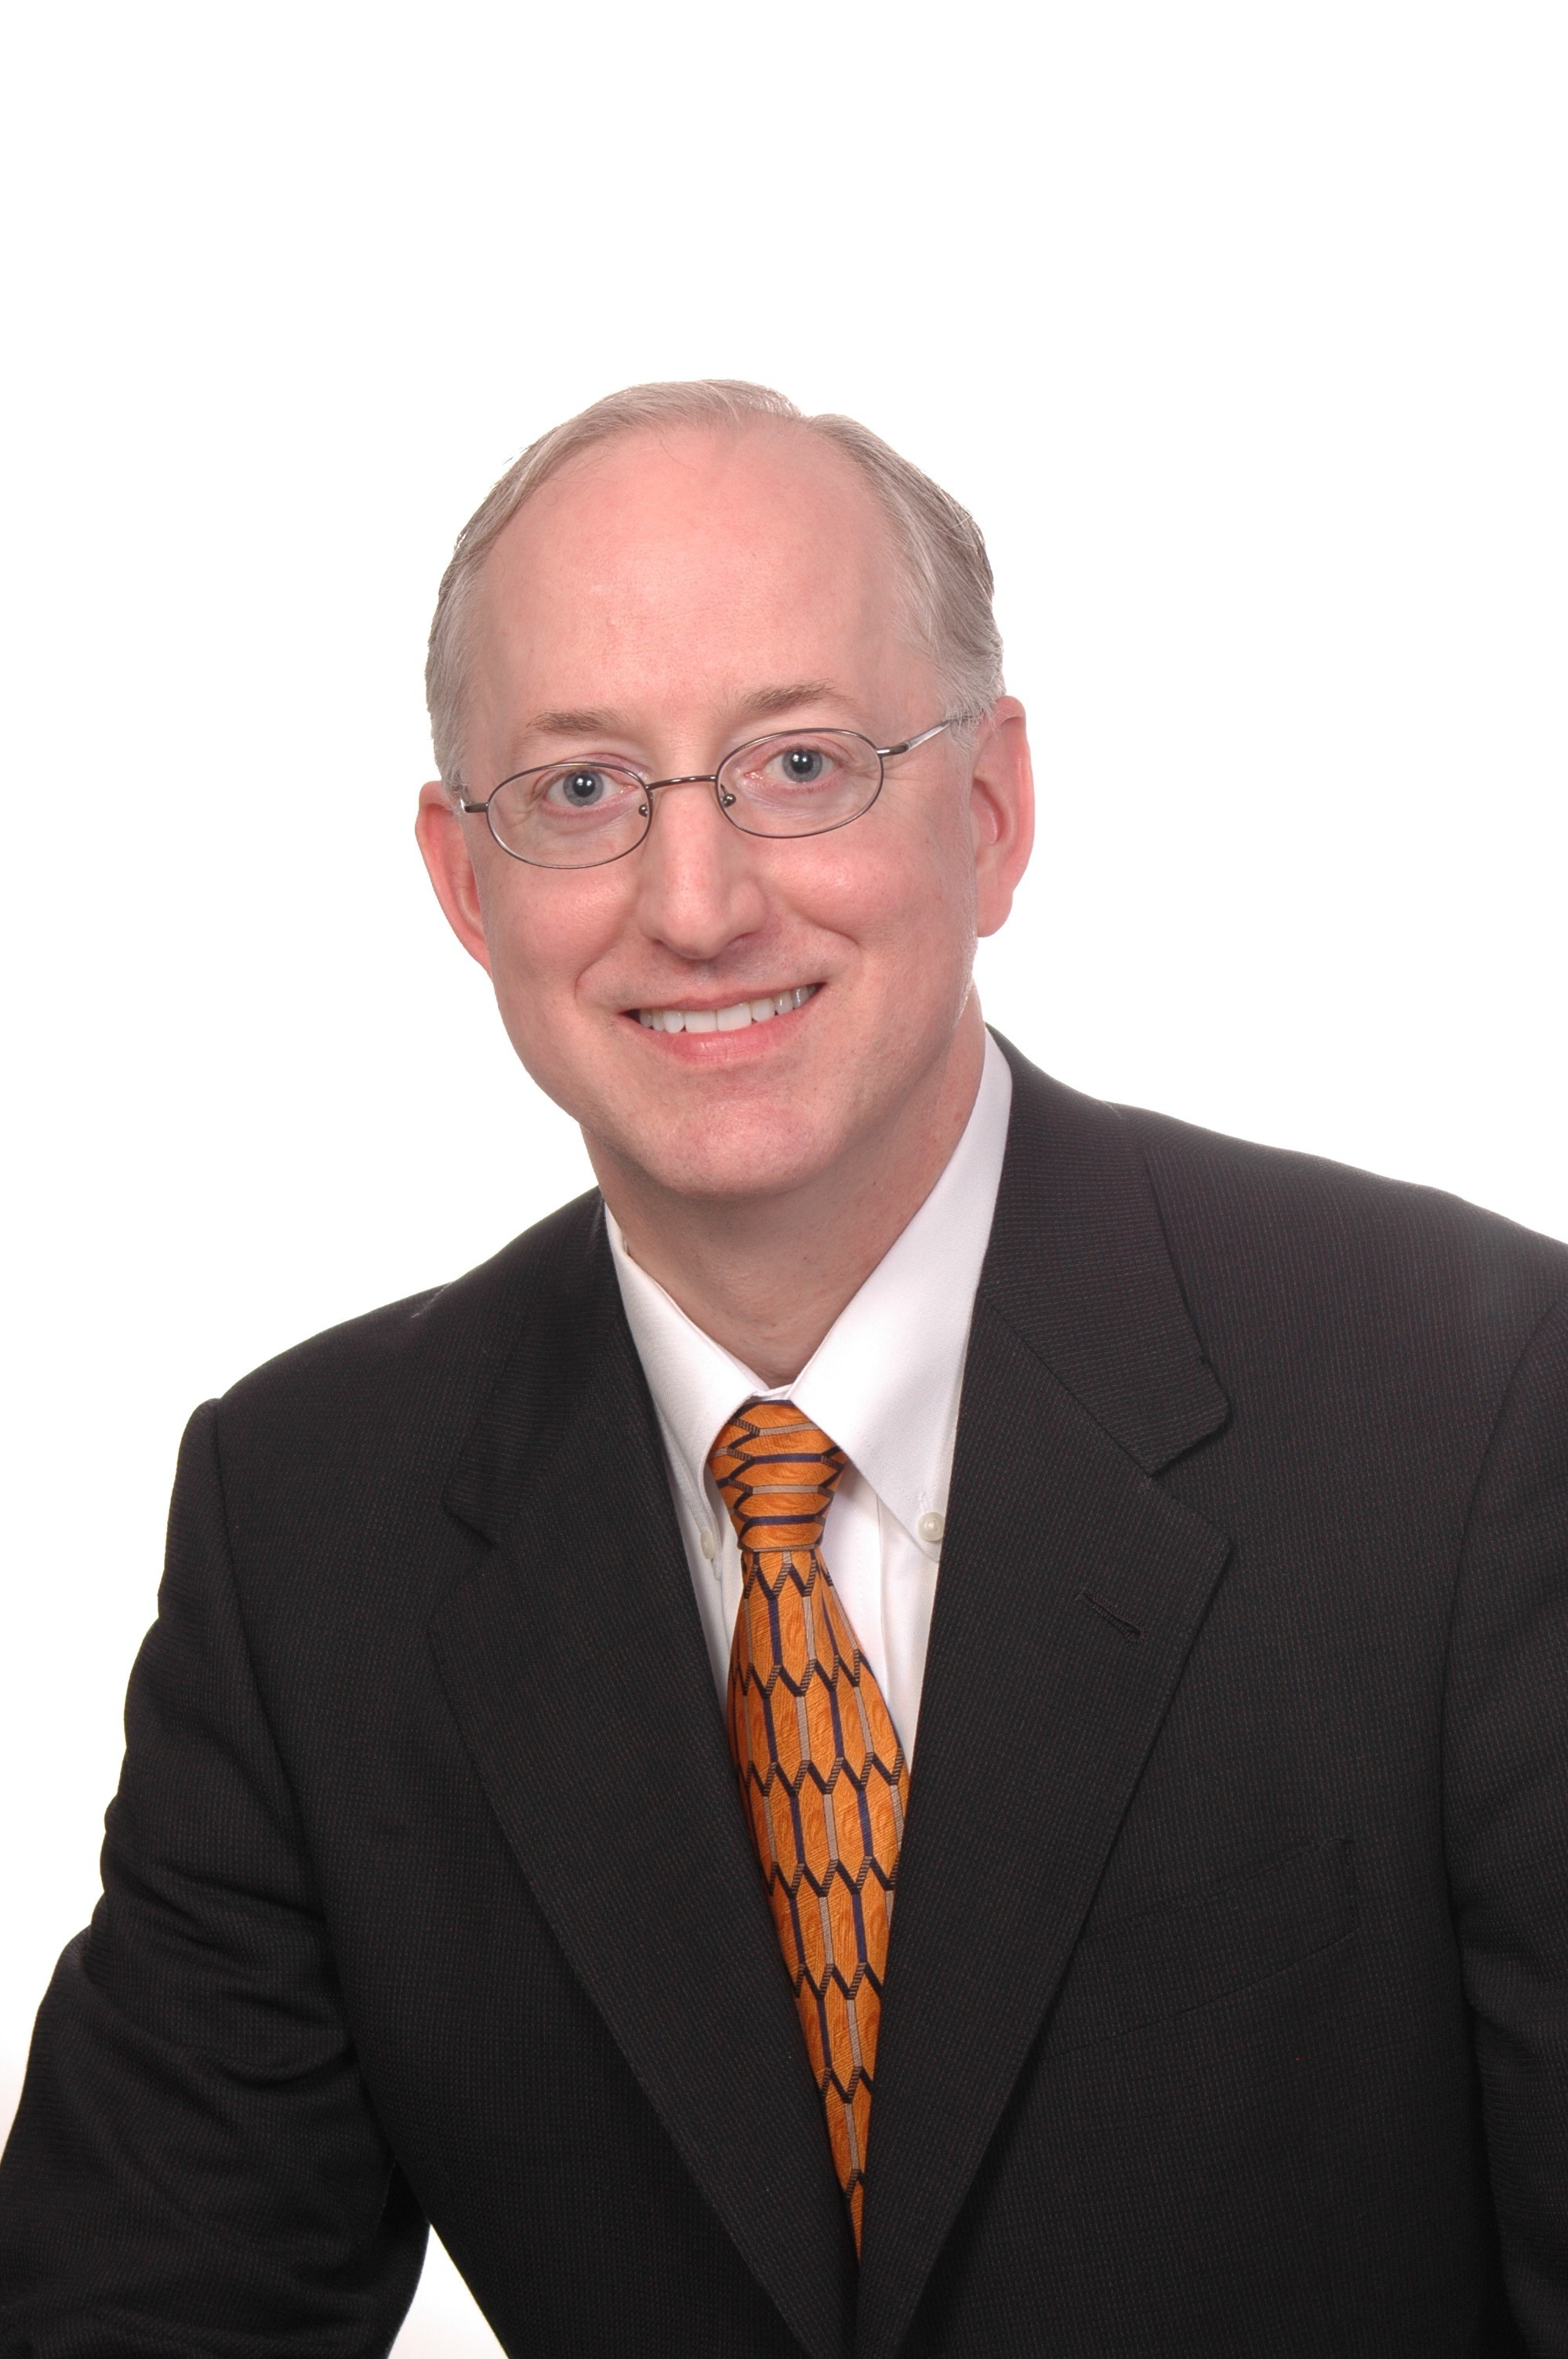 John Frymire, financial advisor Louisville KY